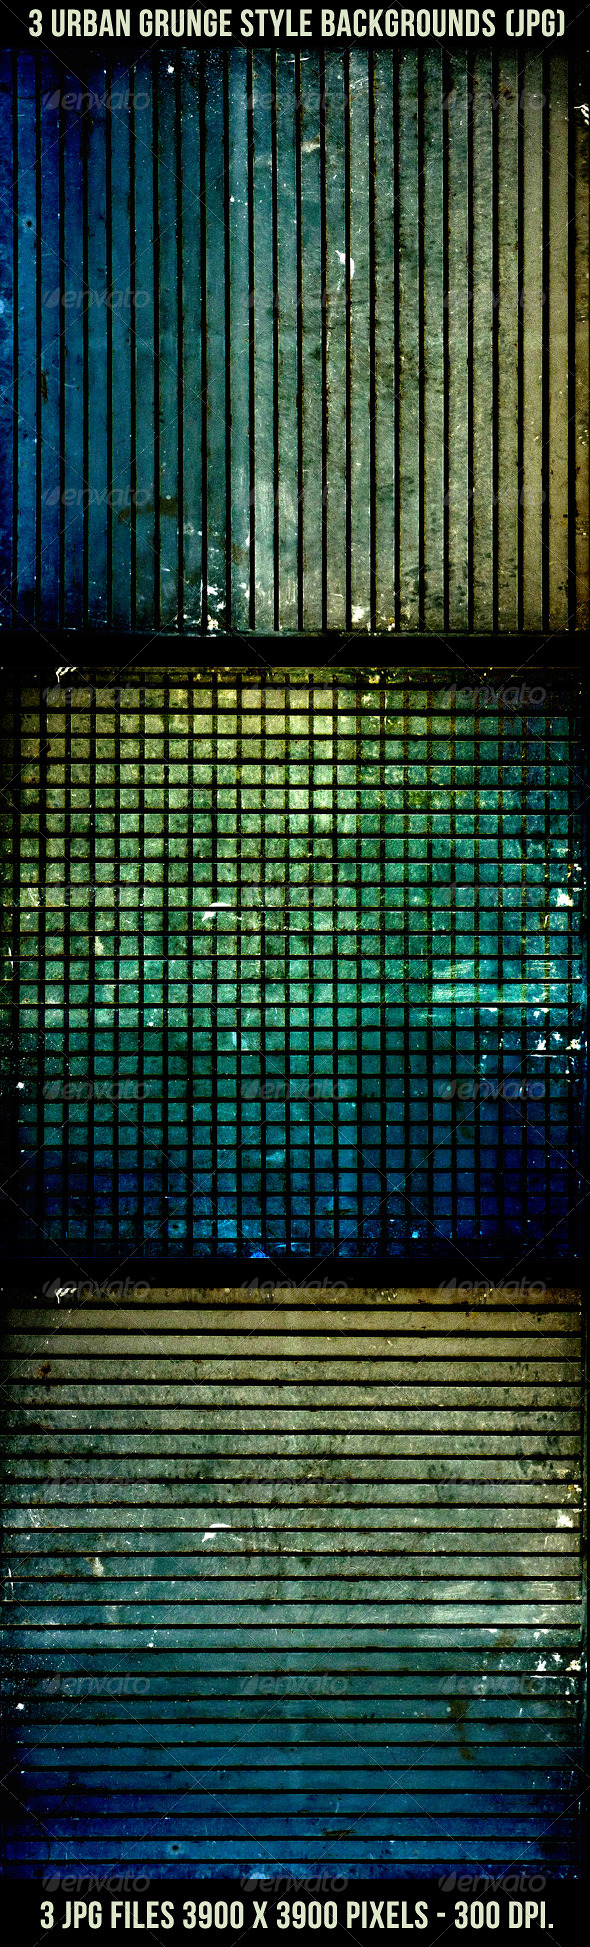 GraphicRiver 3 Urban Grunge Style Backgrounds 4426791